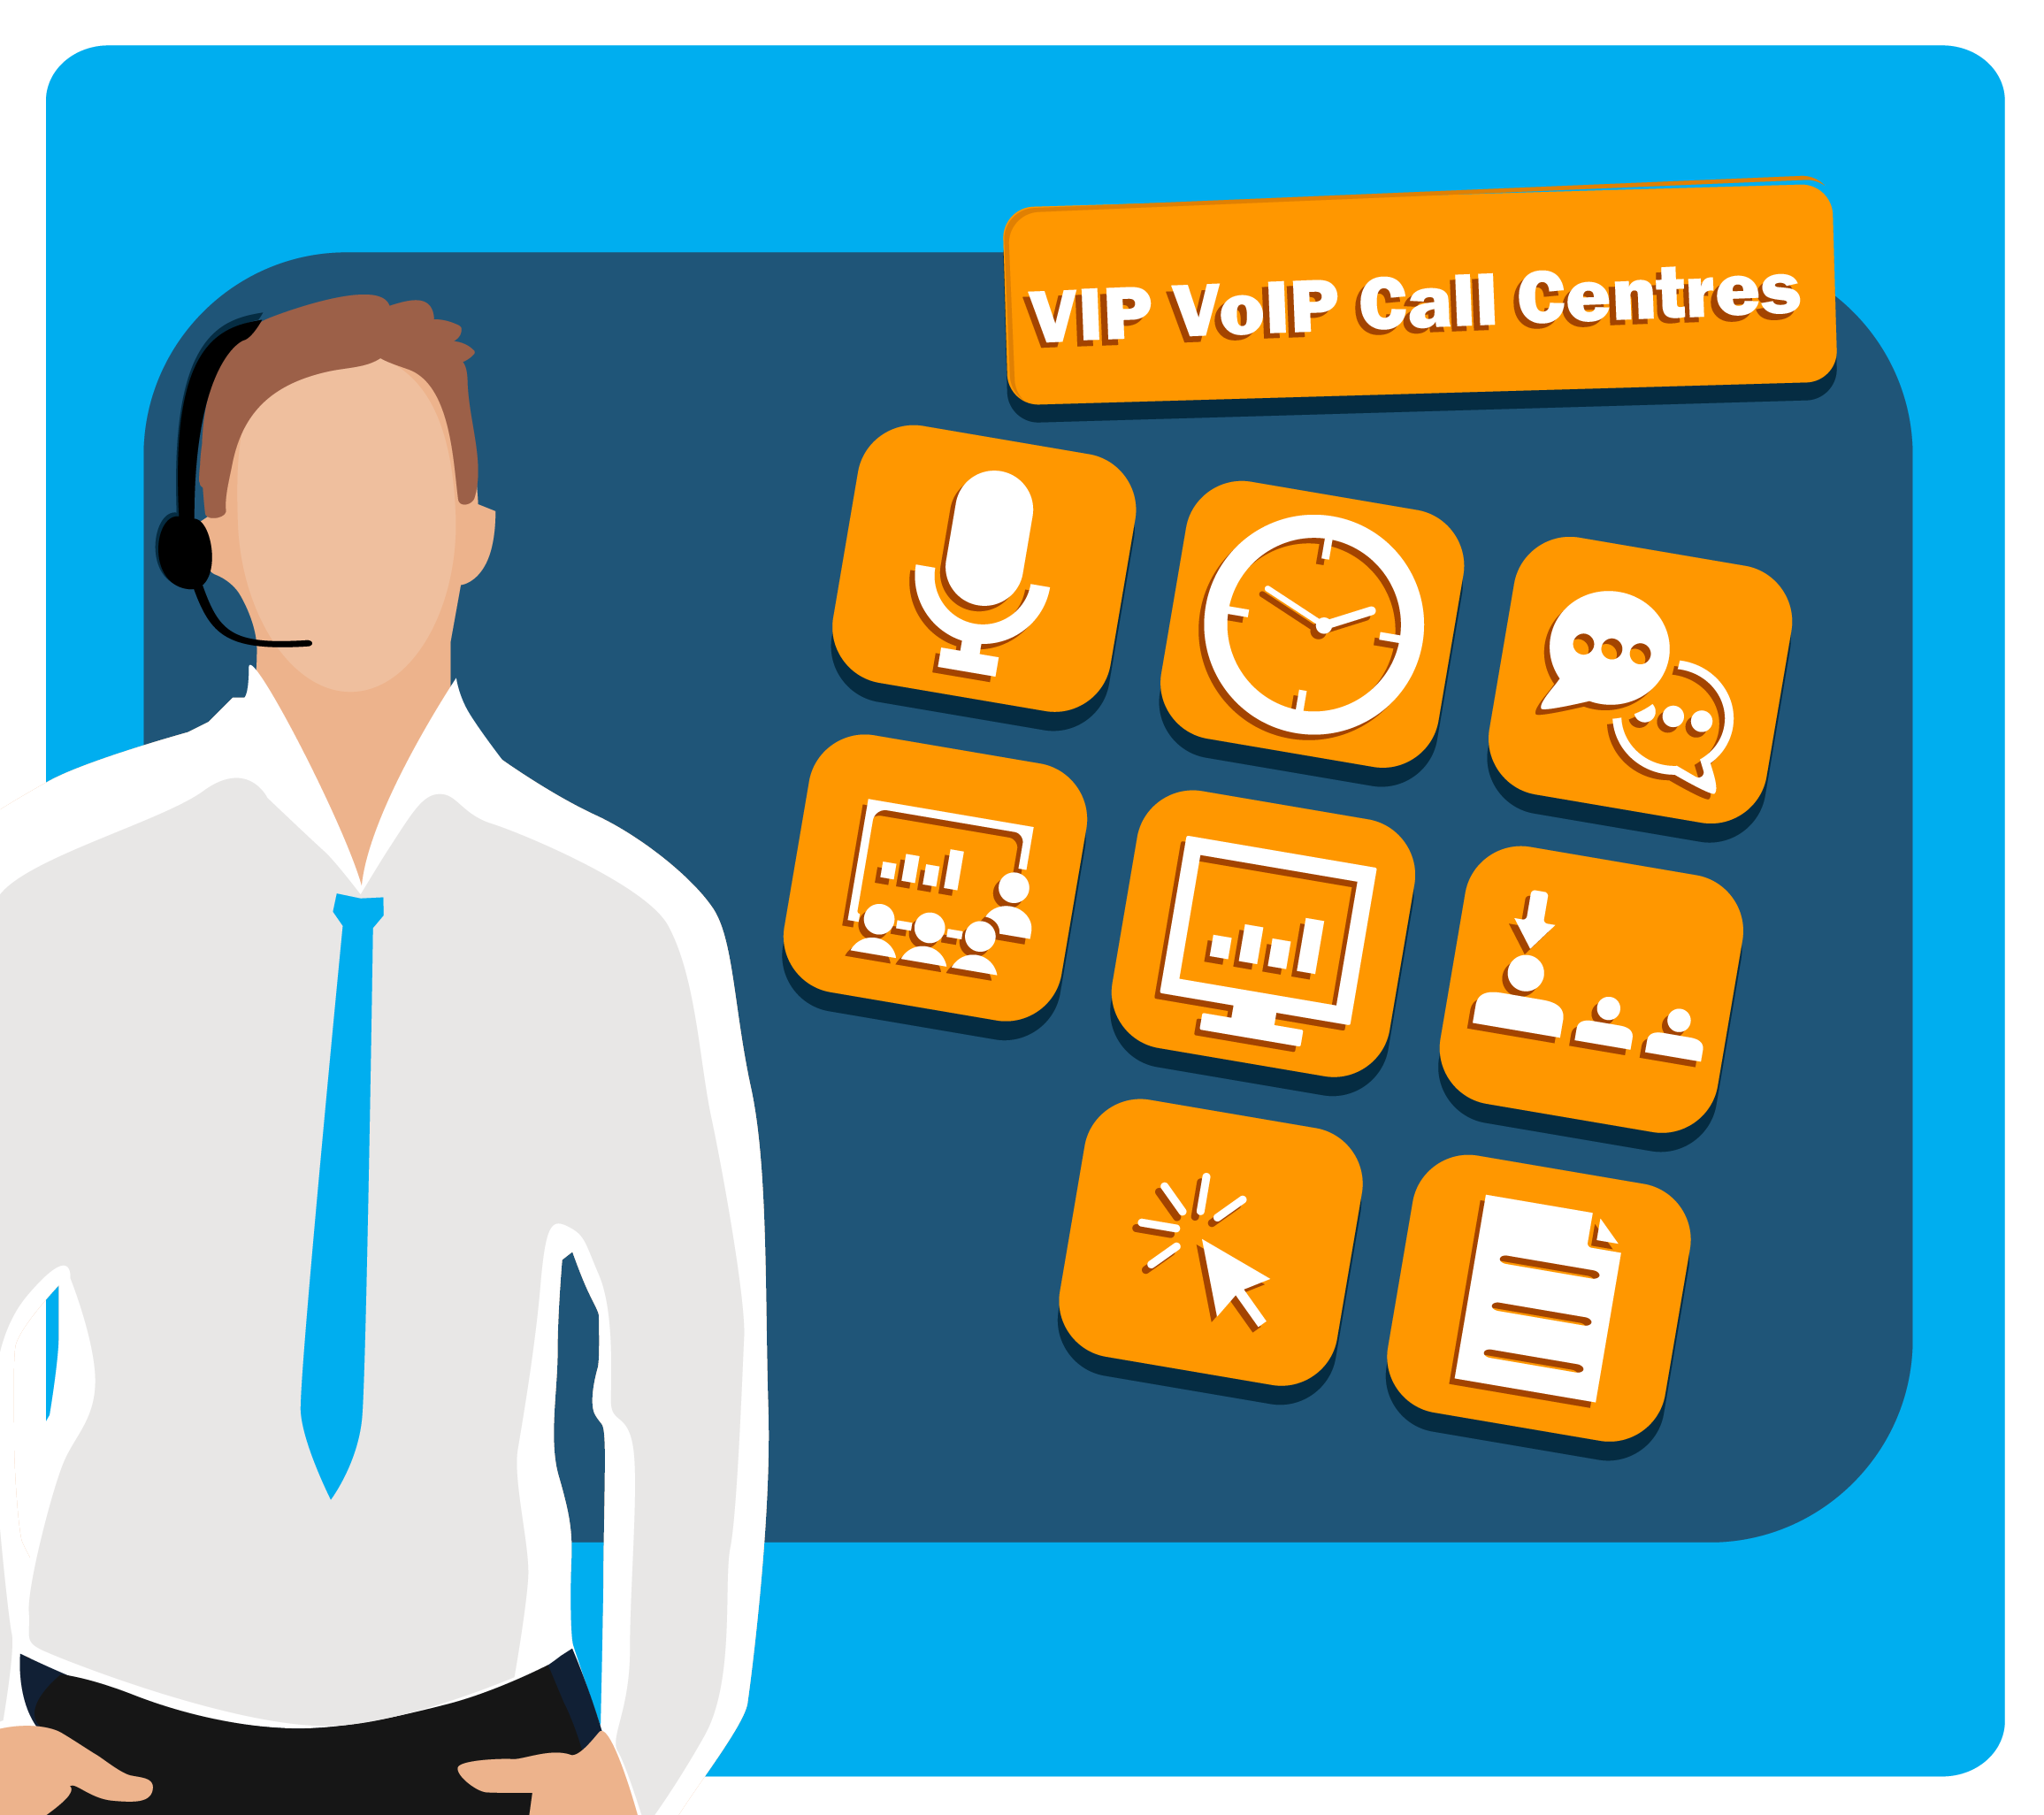 VIP VoIP Call centres benefits